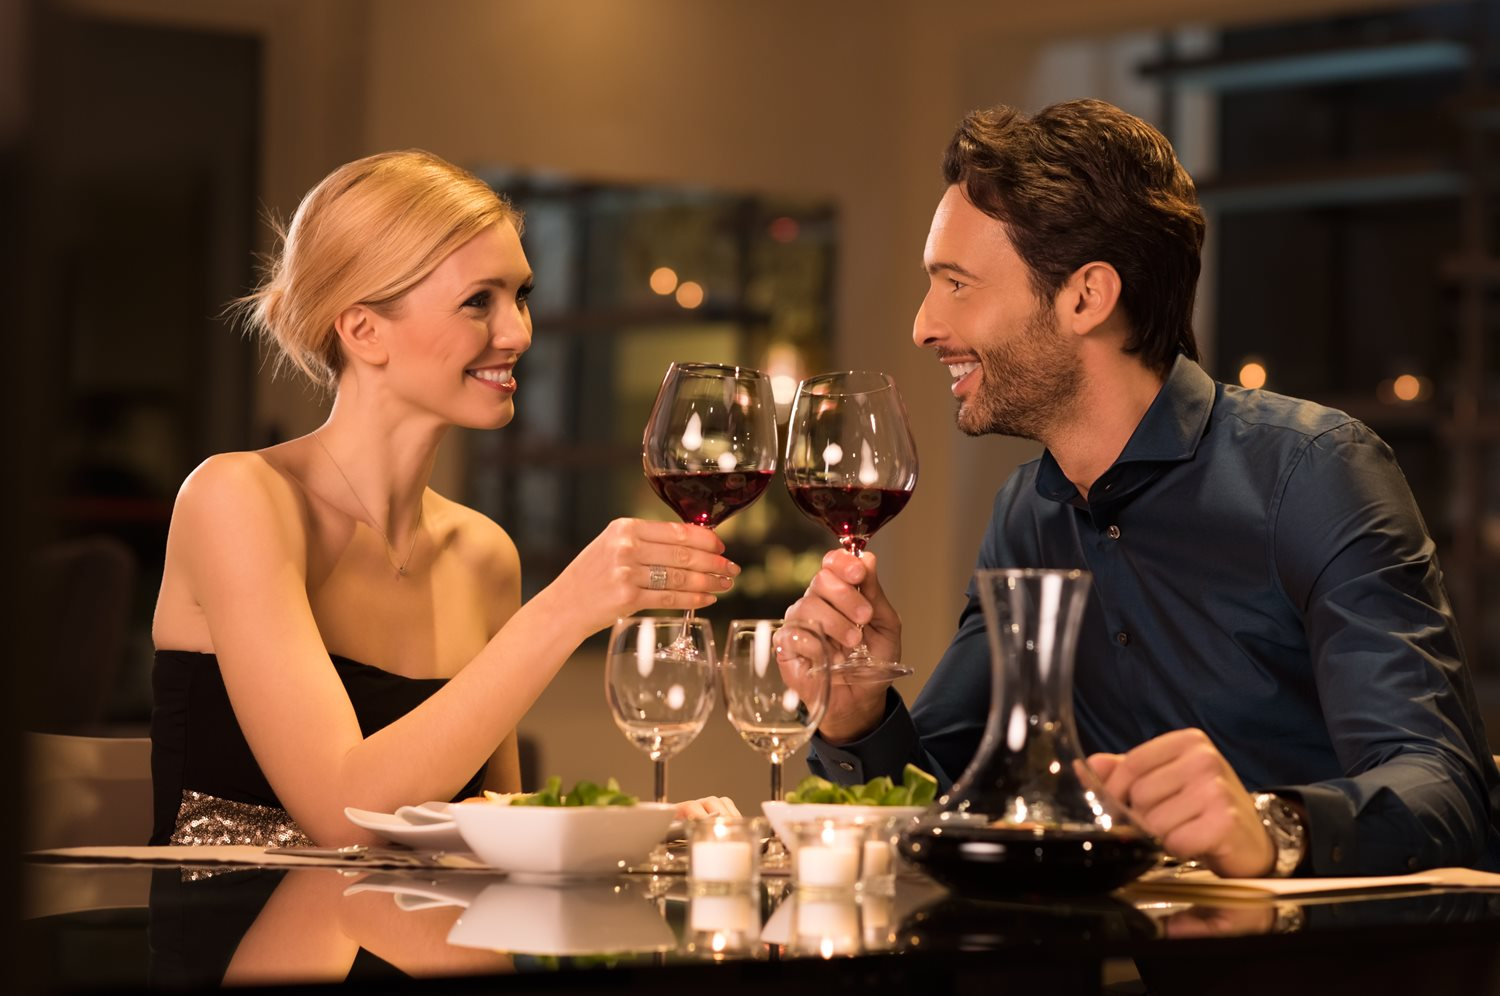 Enjoy a sumptuous 3 course dinner in the romantic candlelit Lifehouse Restaurant